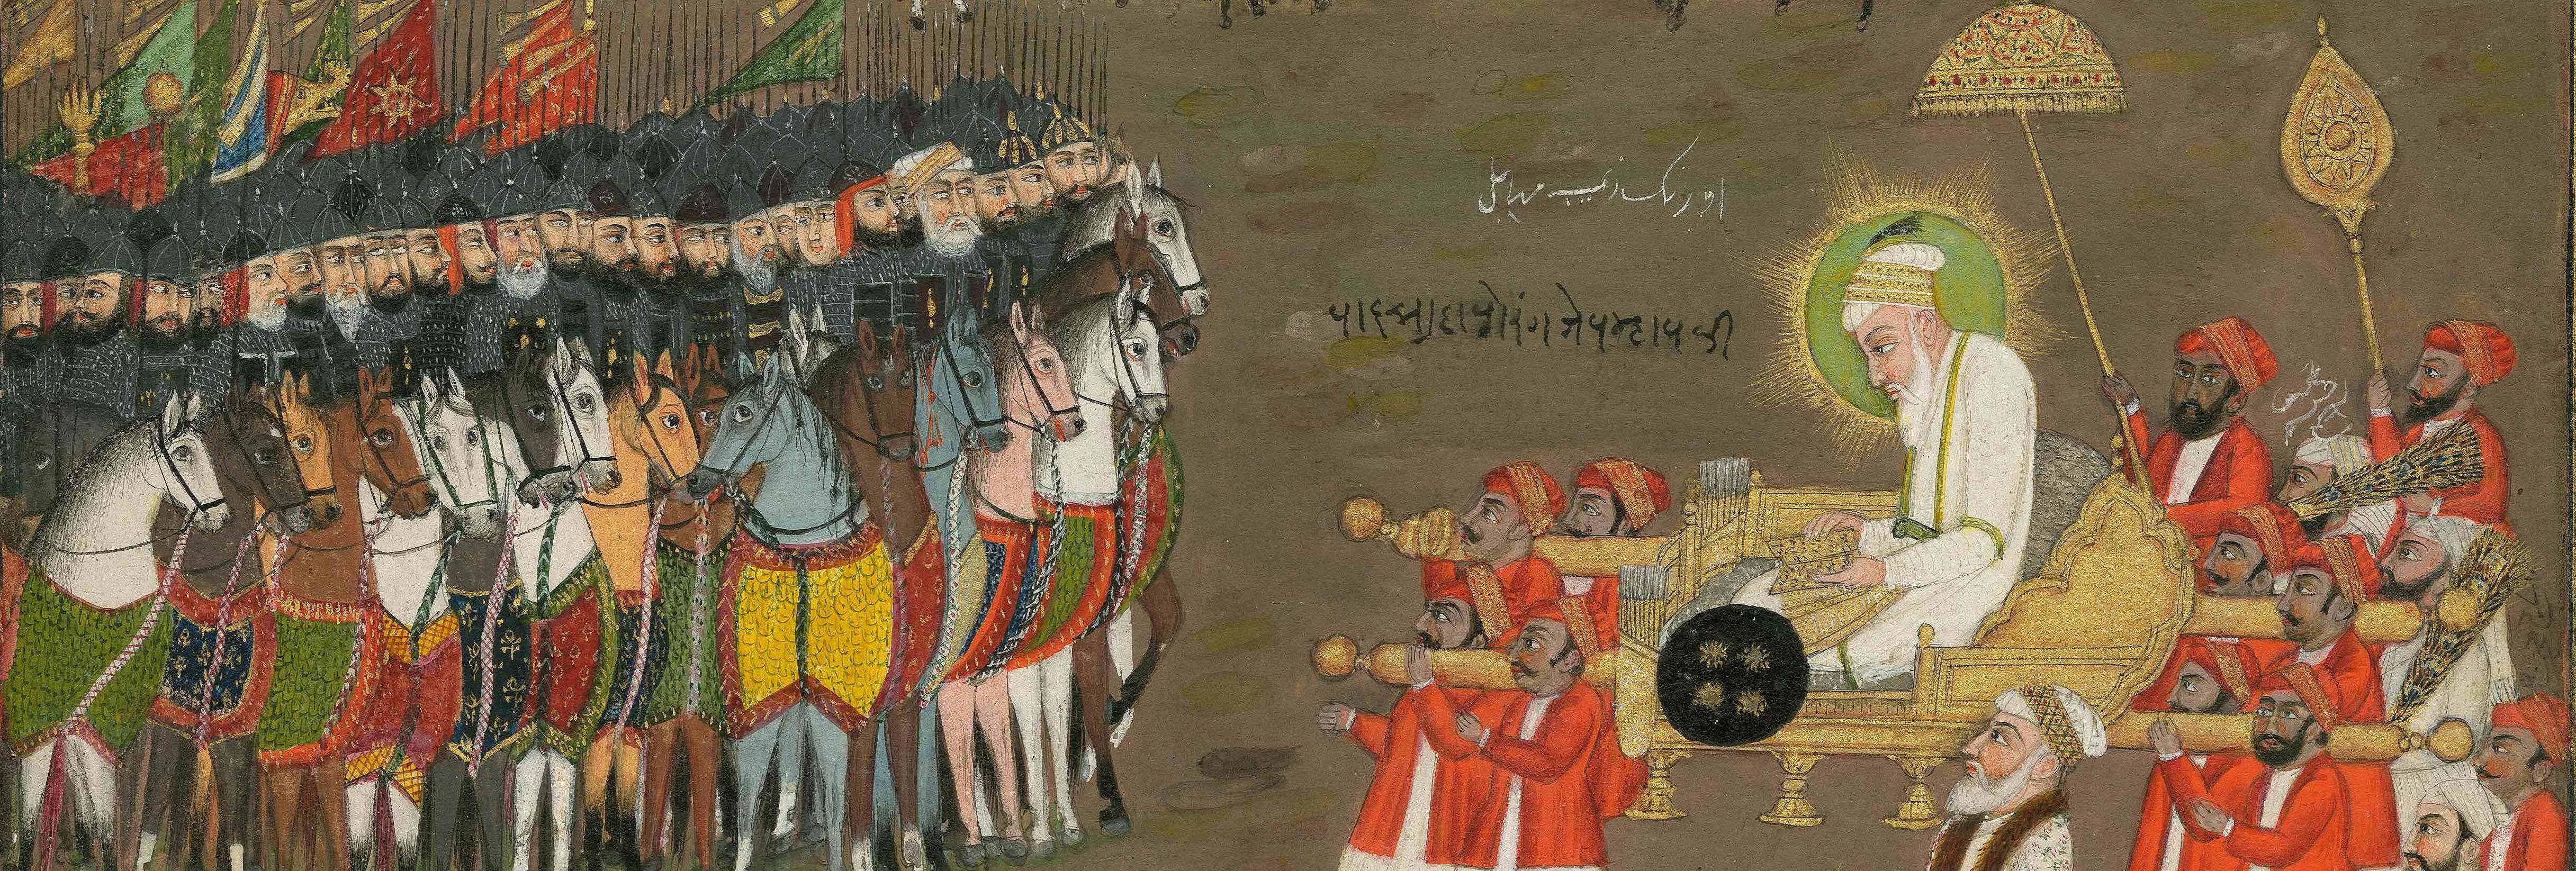 india in medieval time Medievalpluscom ~ the medieval period of history ~ the middle ages is a period in european history which, along with its adjective 'medieval', was first referred to by italian scholars and academics of the late fifteenth century.